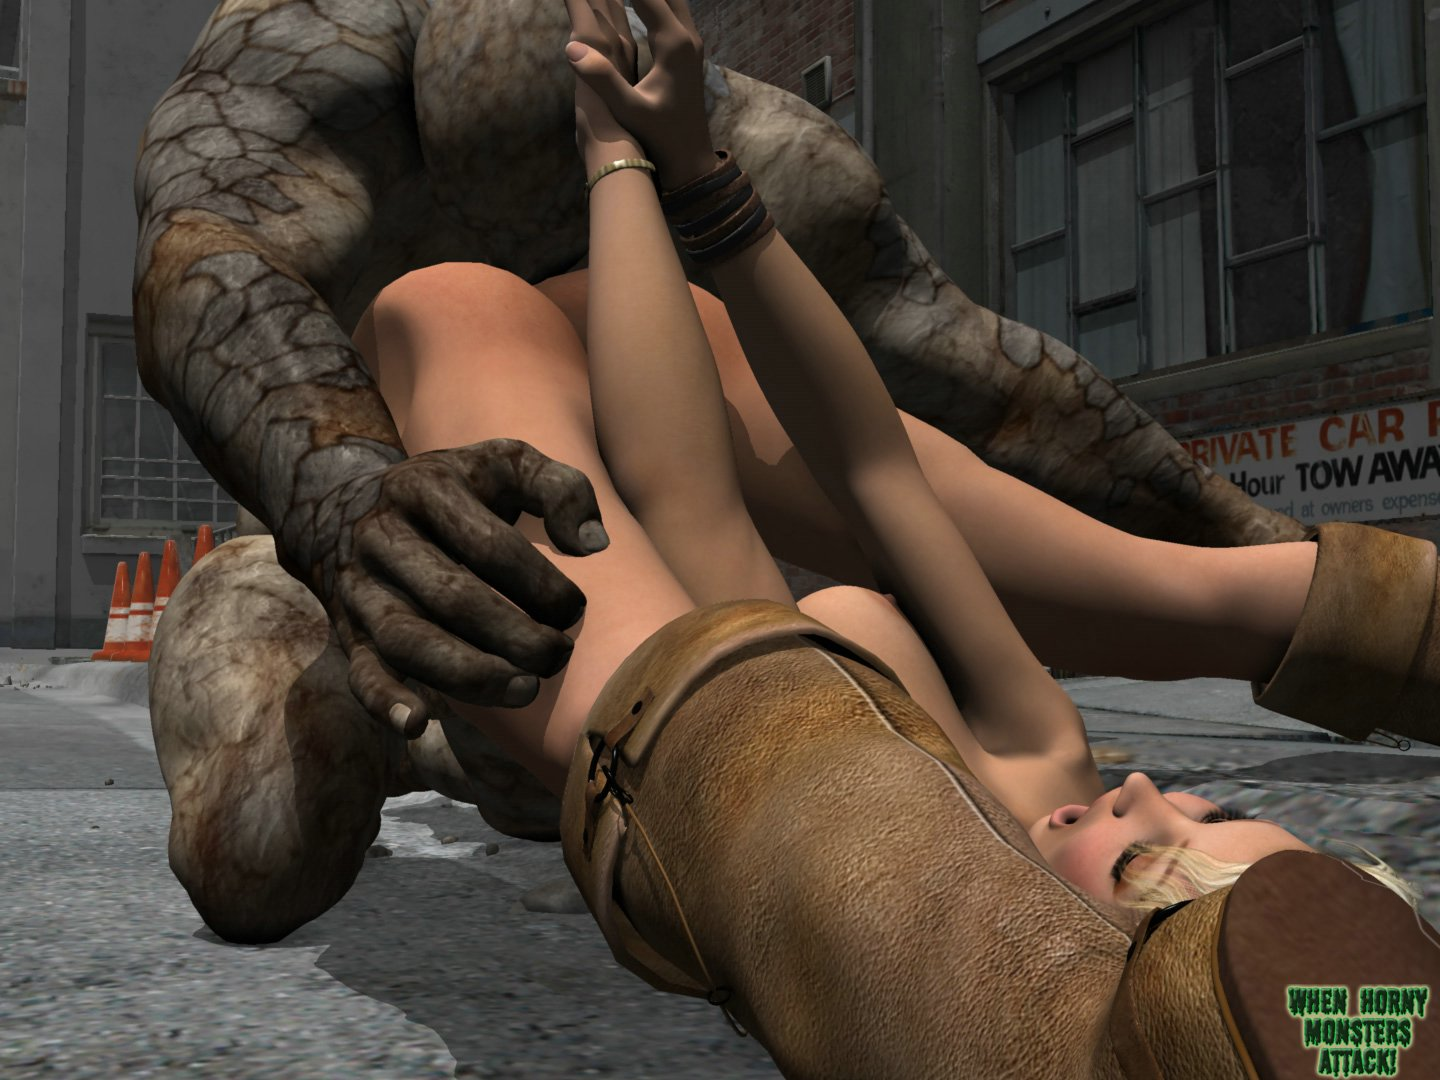 Monsters having sex with humans nsfw gallery